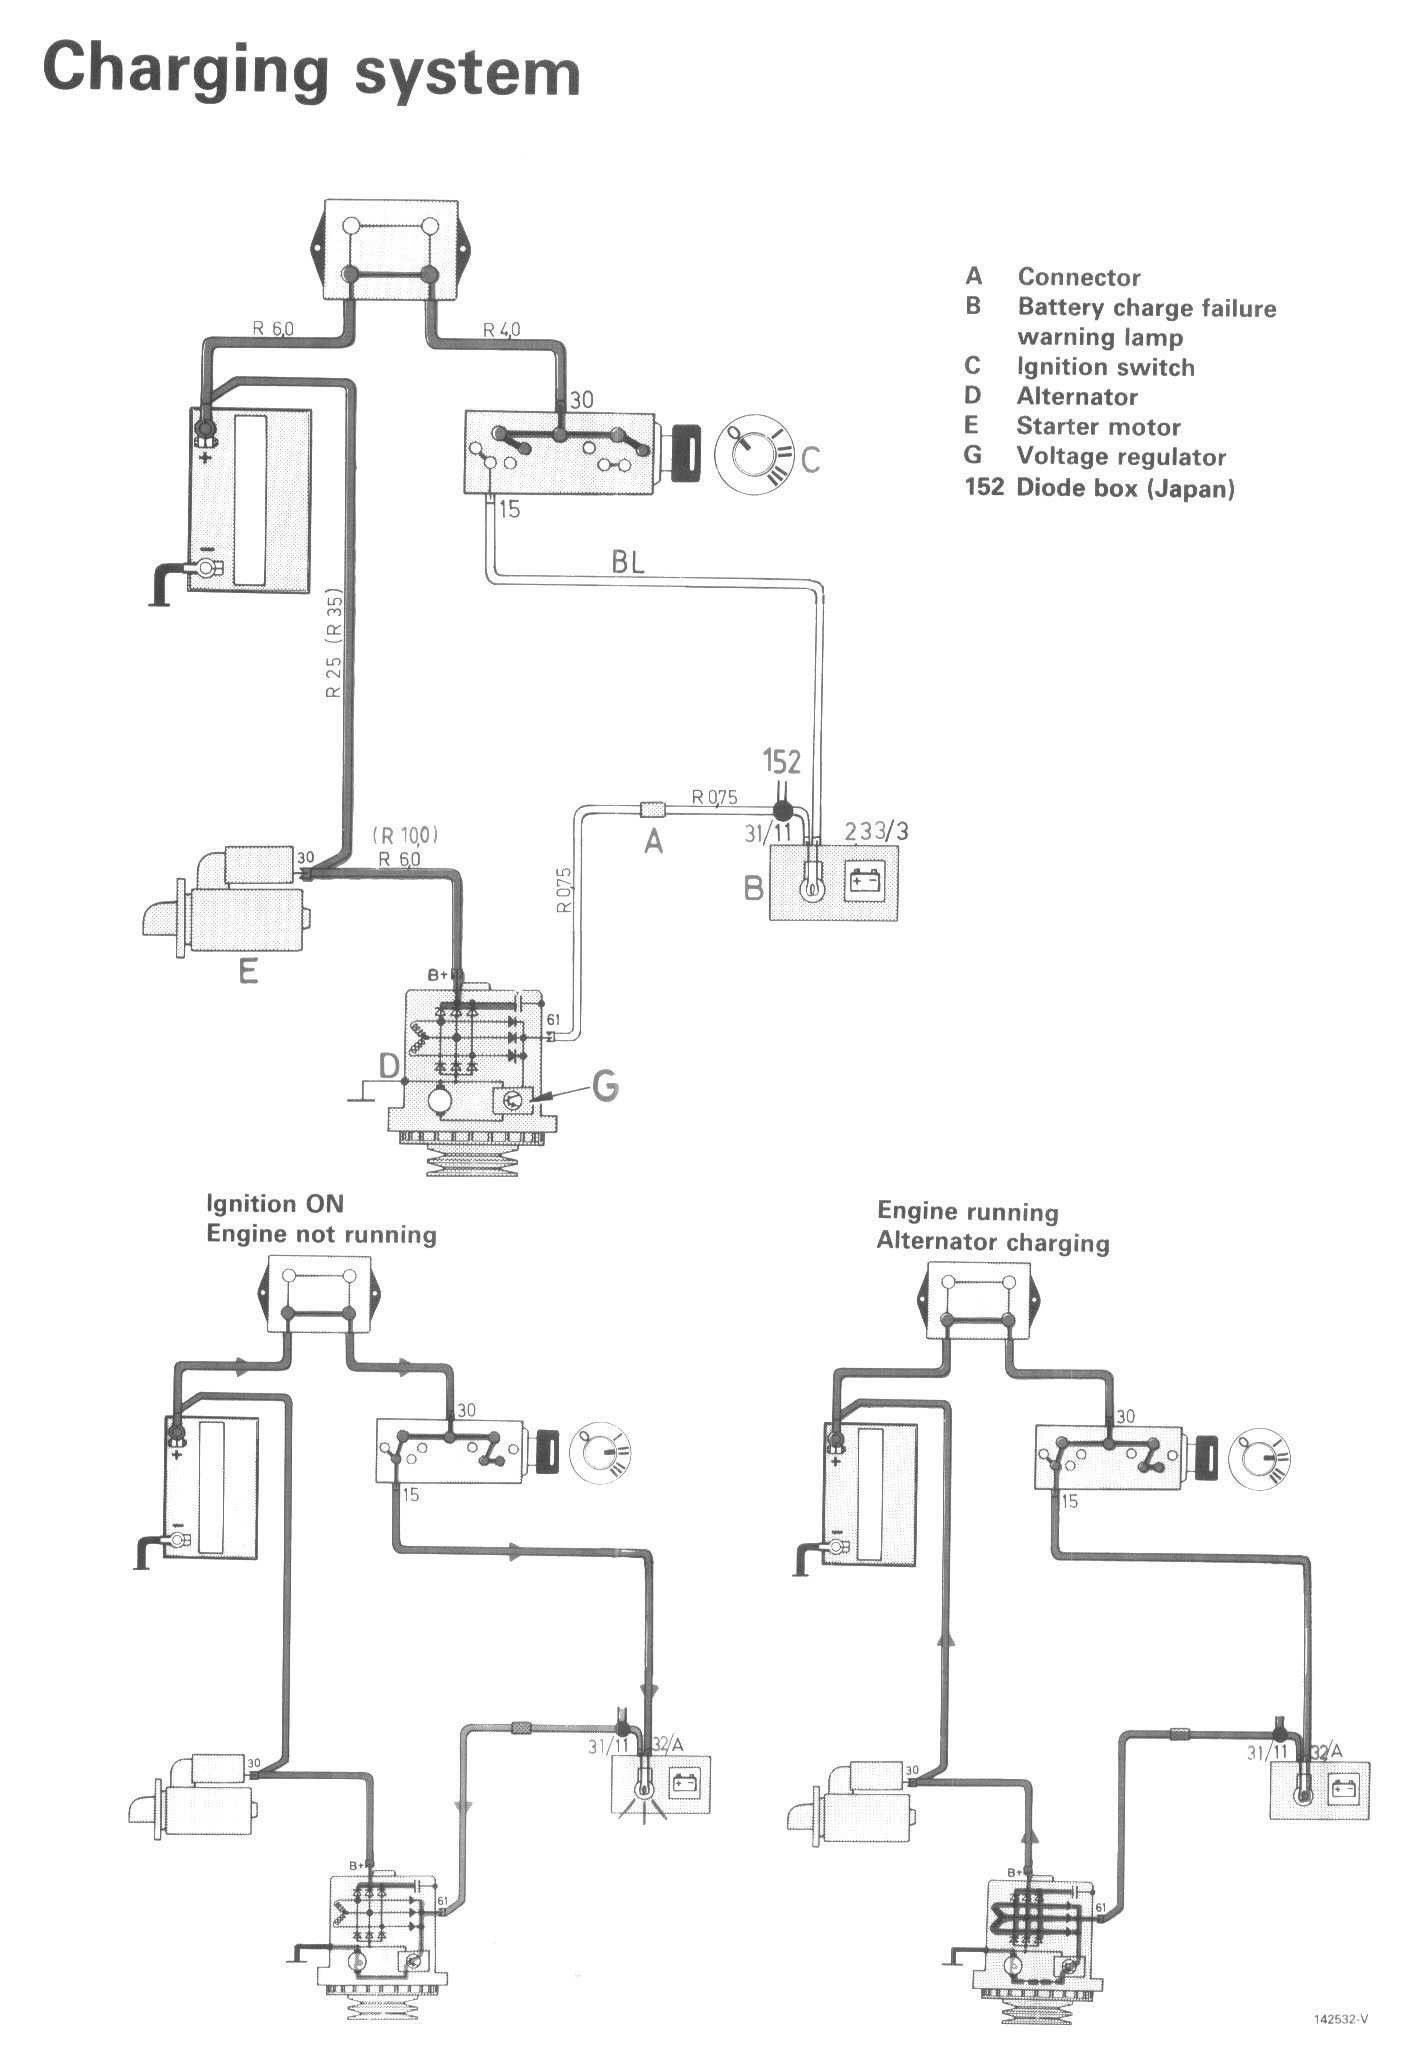 hight resolution of volvo penta outdrive wiring diagram 2 sx parts domainadvice org